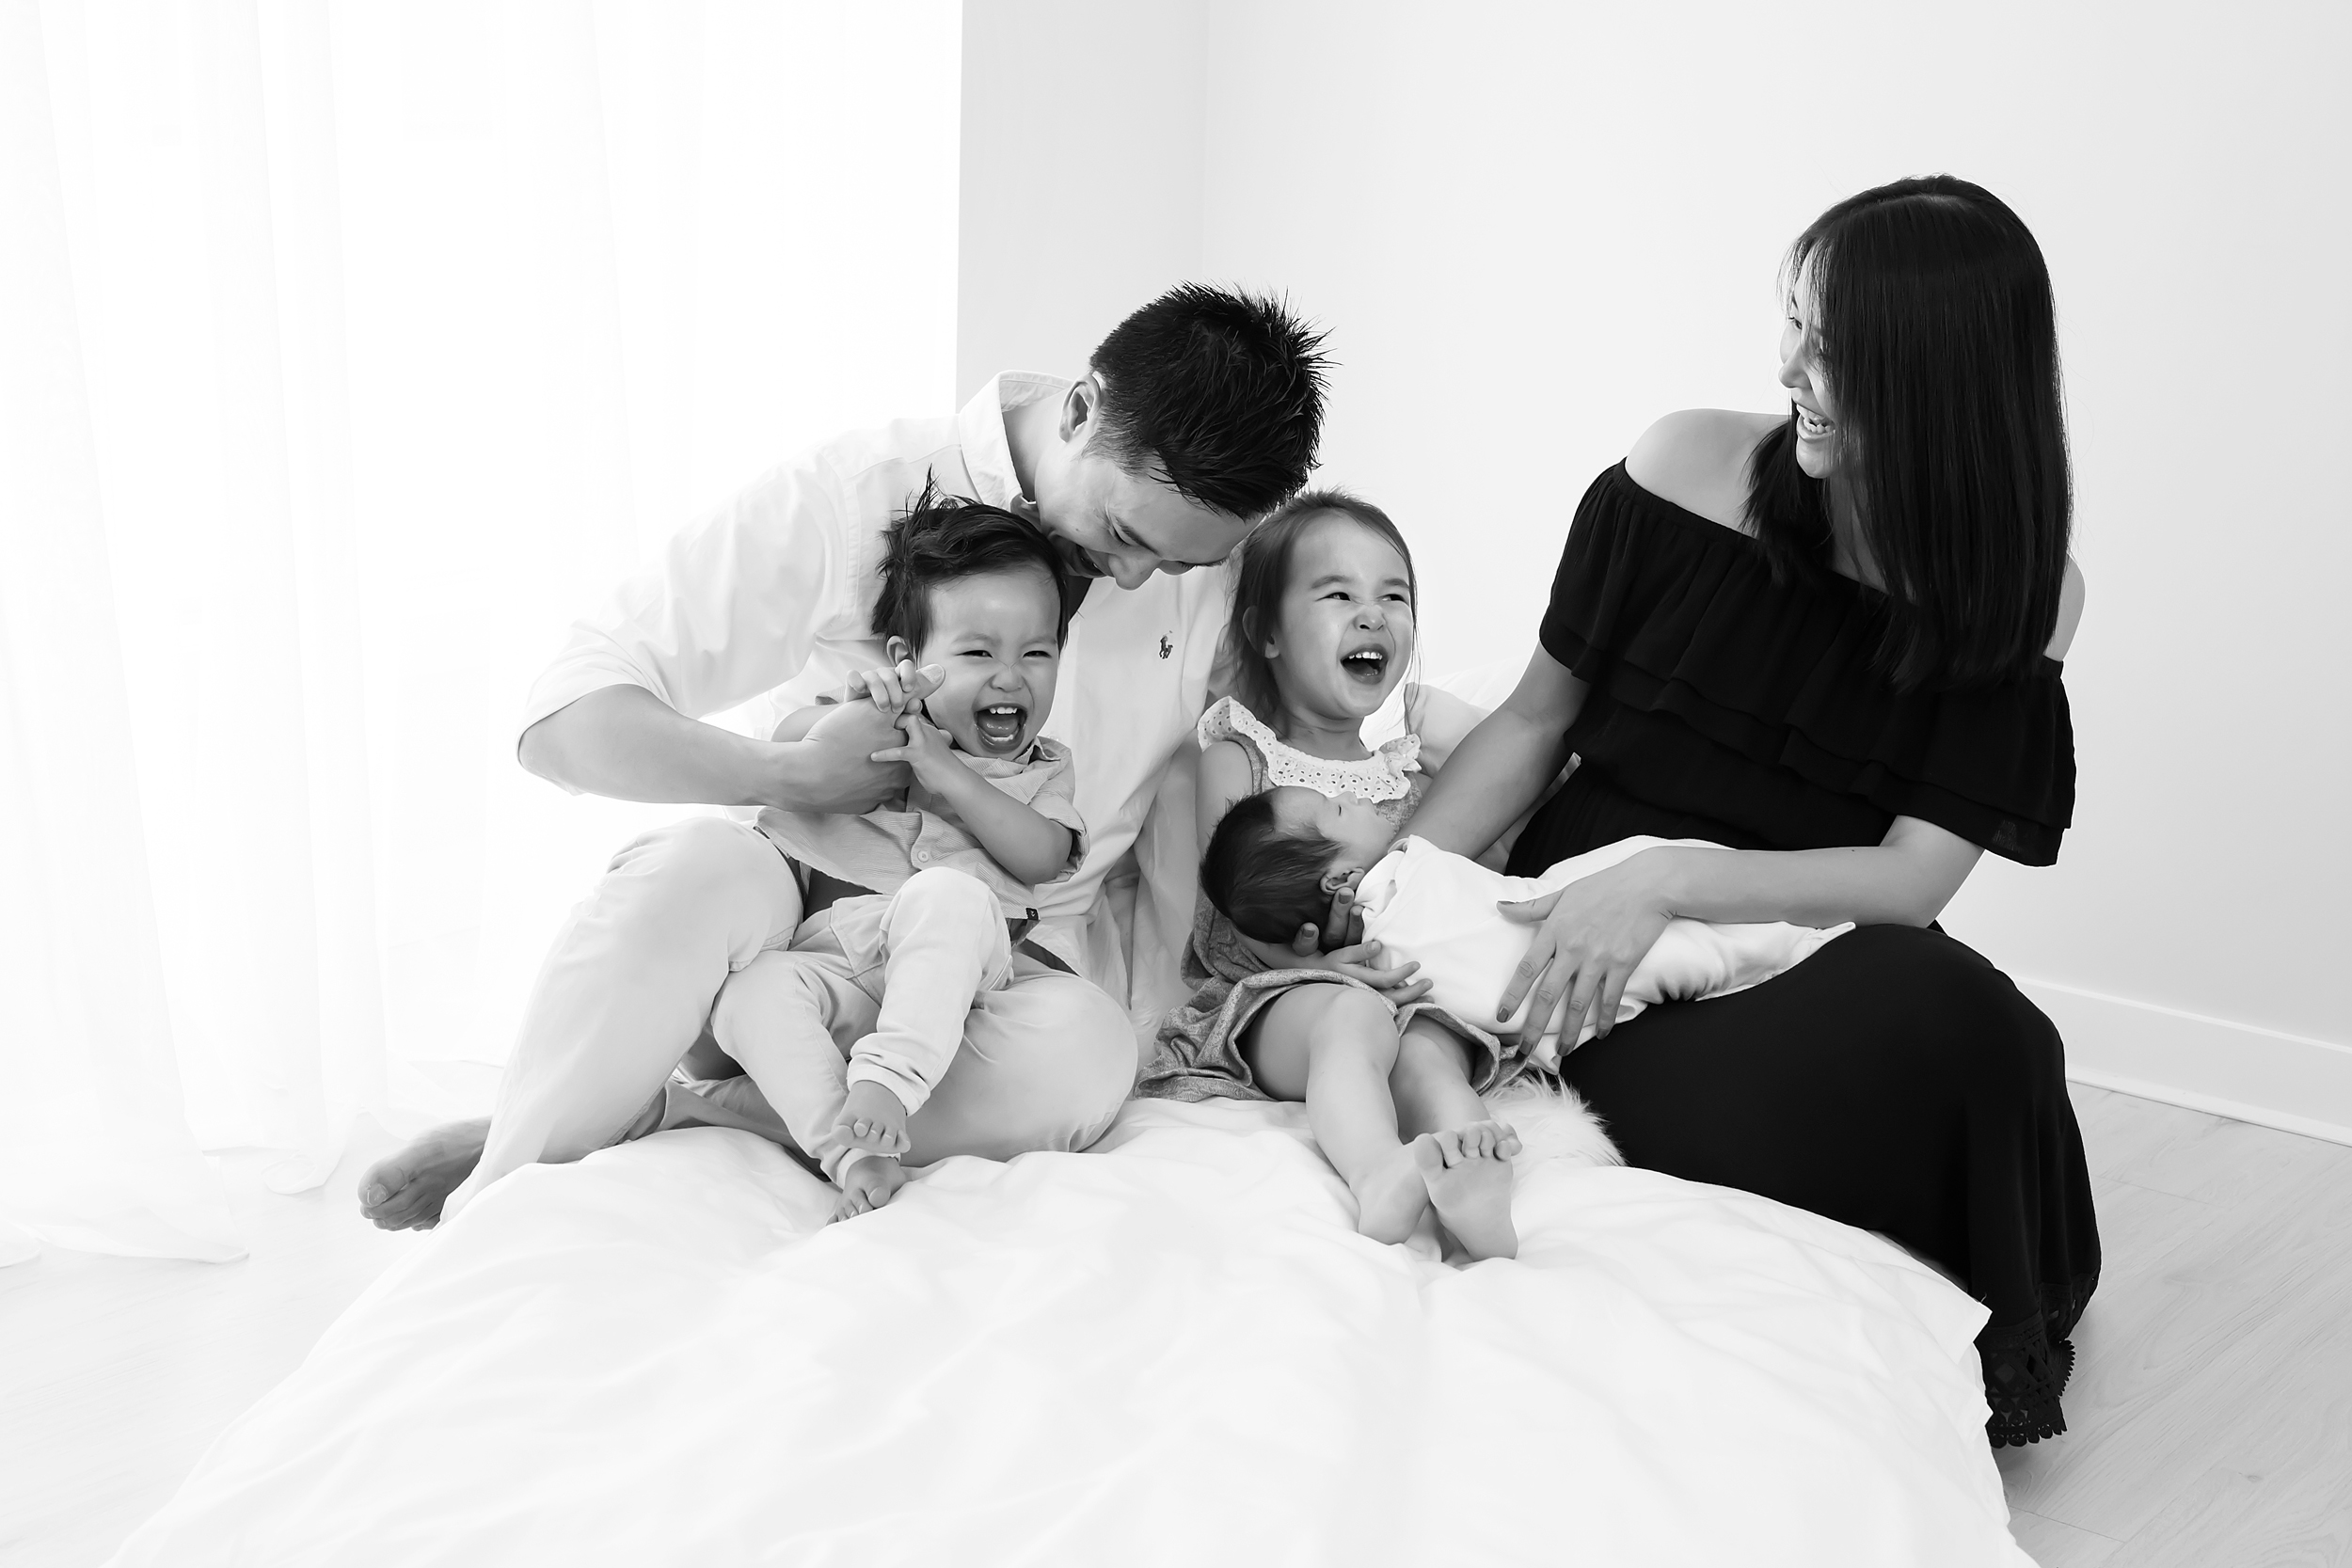 A candid photo of a Melbourne family with their newborn baby taken by Melbourne newborn photographer, Monique Graham